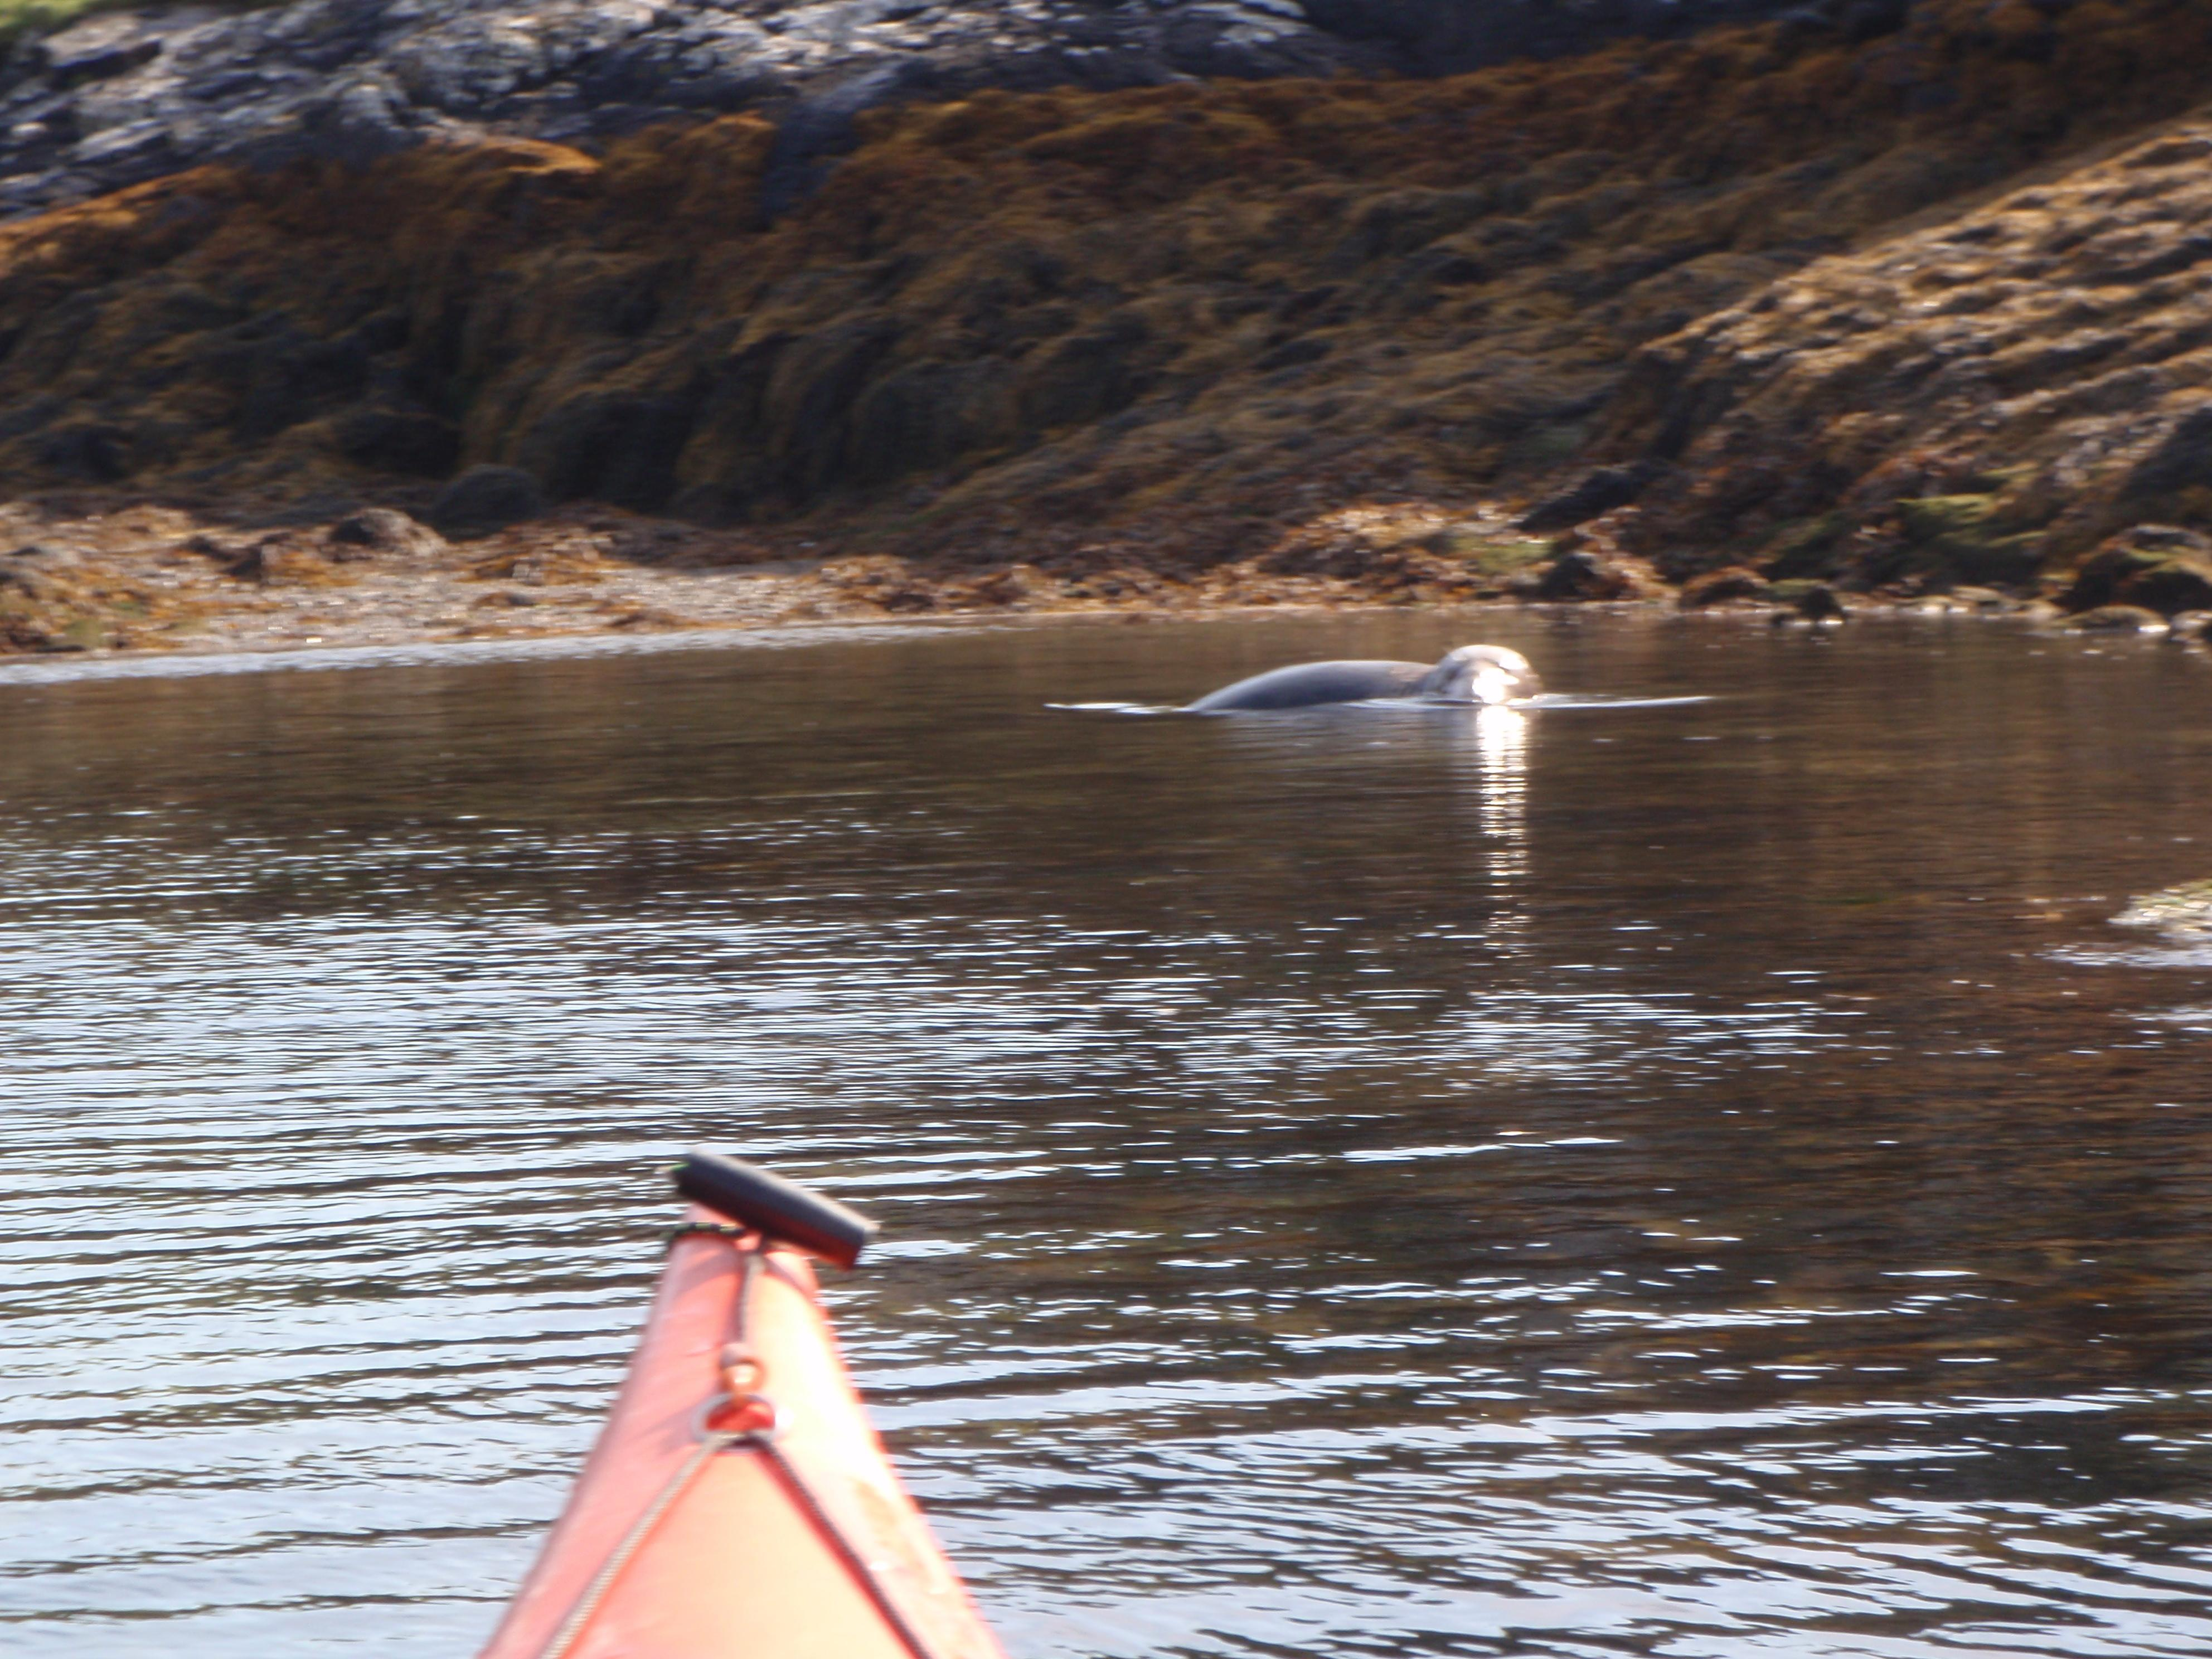 Robin meets the local wildl;ife in his kayak